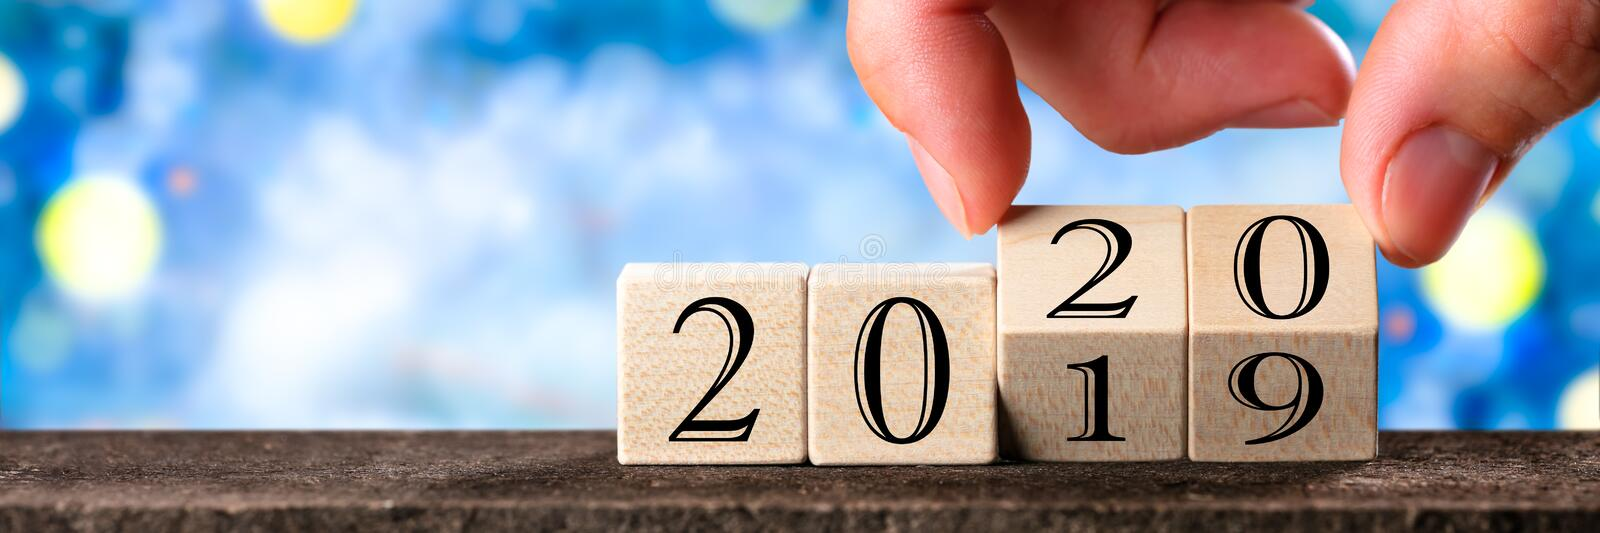 Hand Changing Date From 2019 To 2020 royalty free stock images